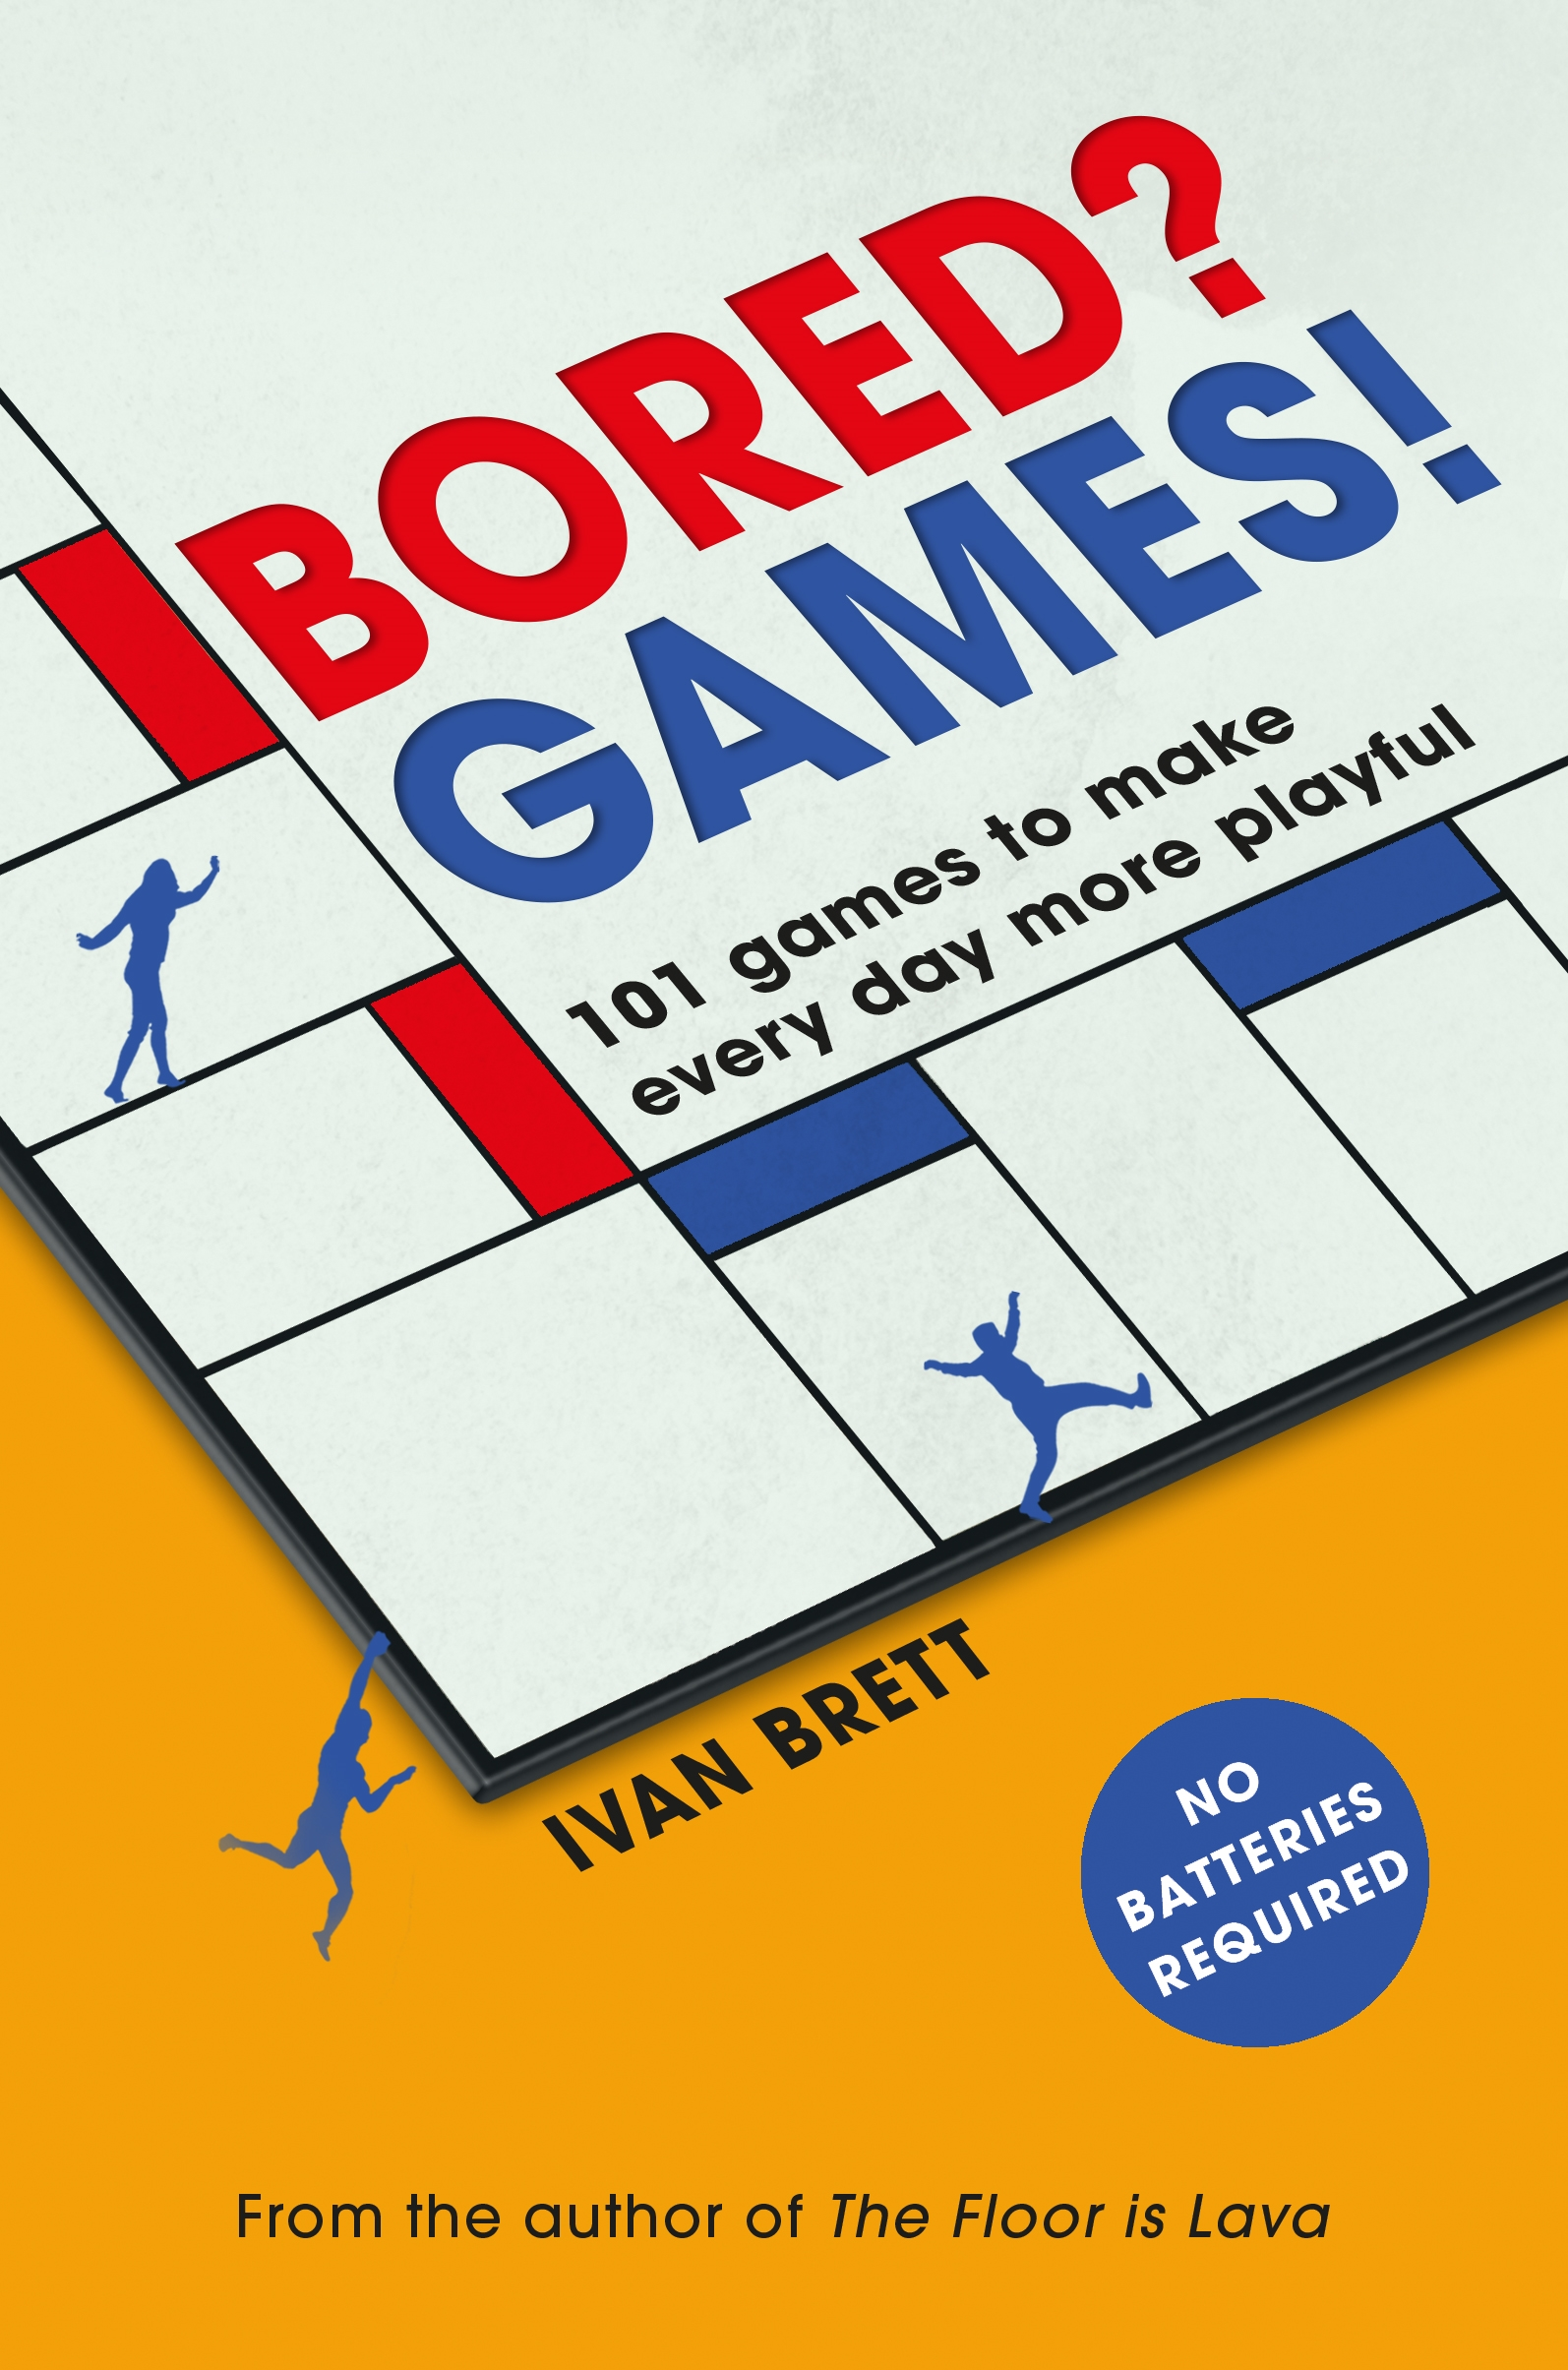 Bored? Games! 1